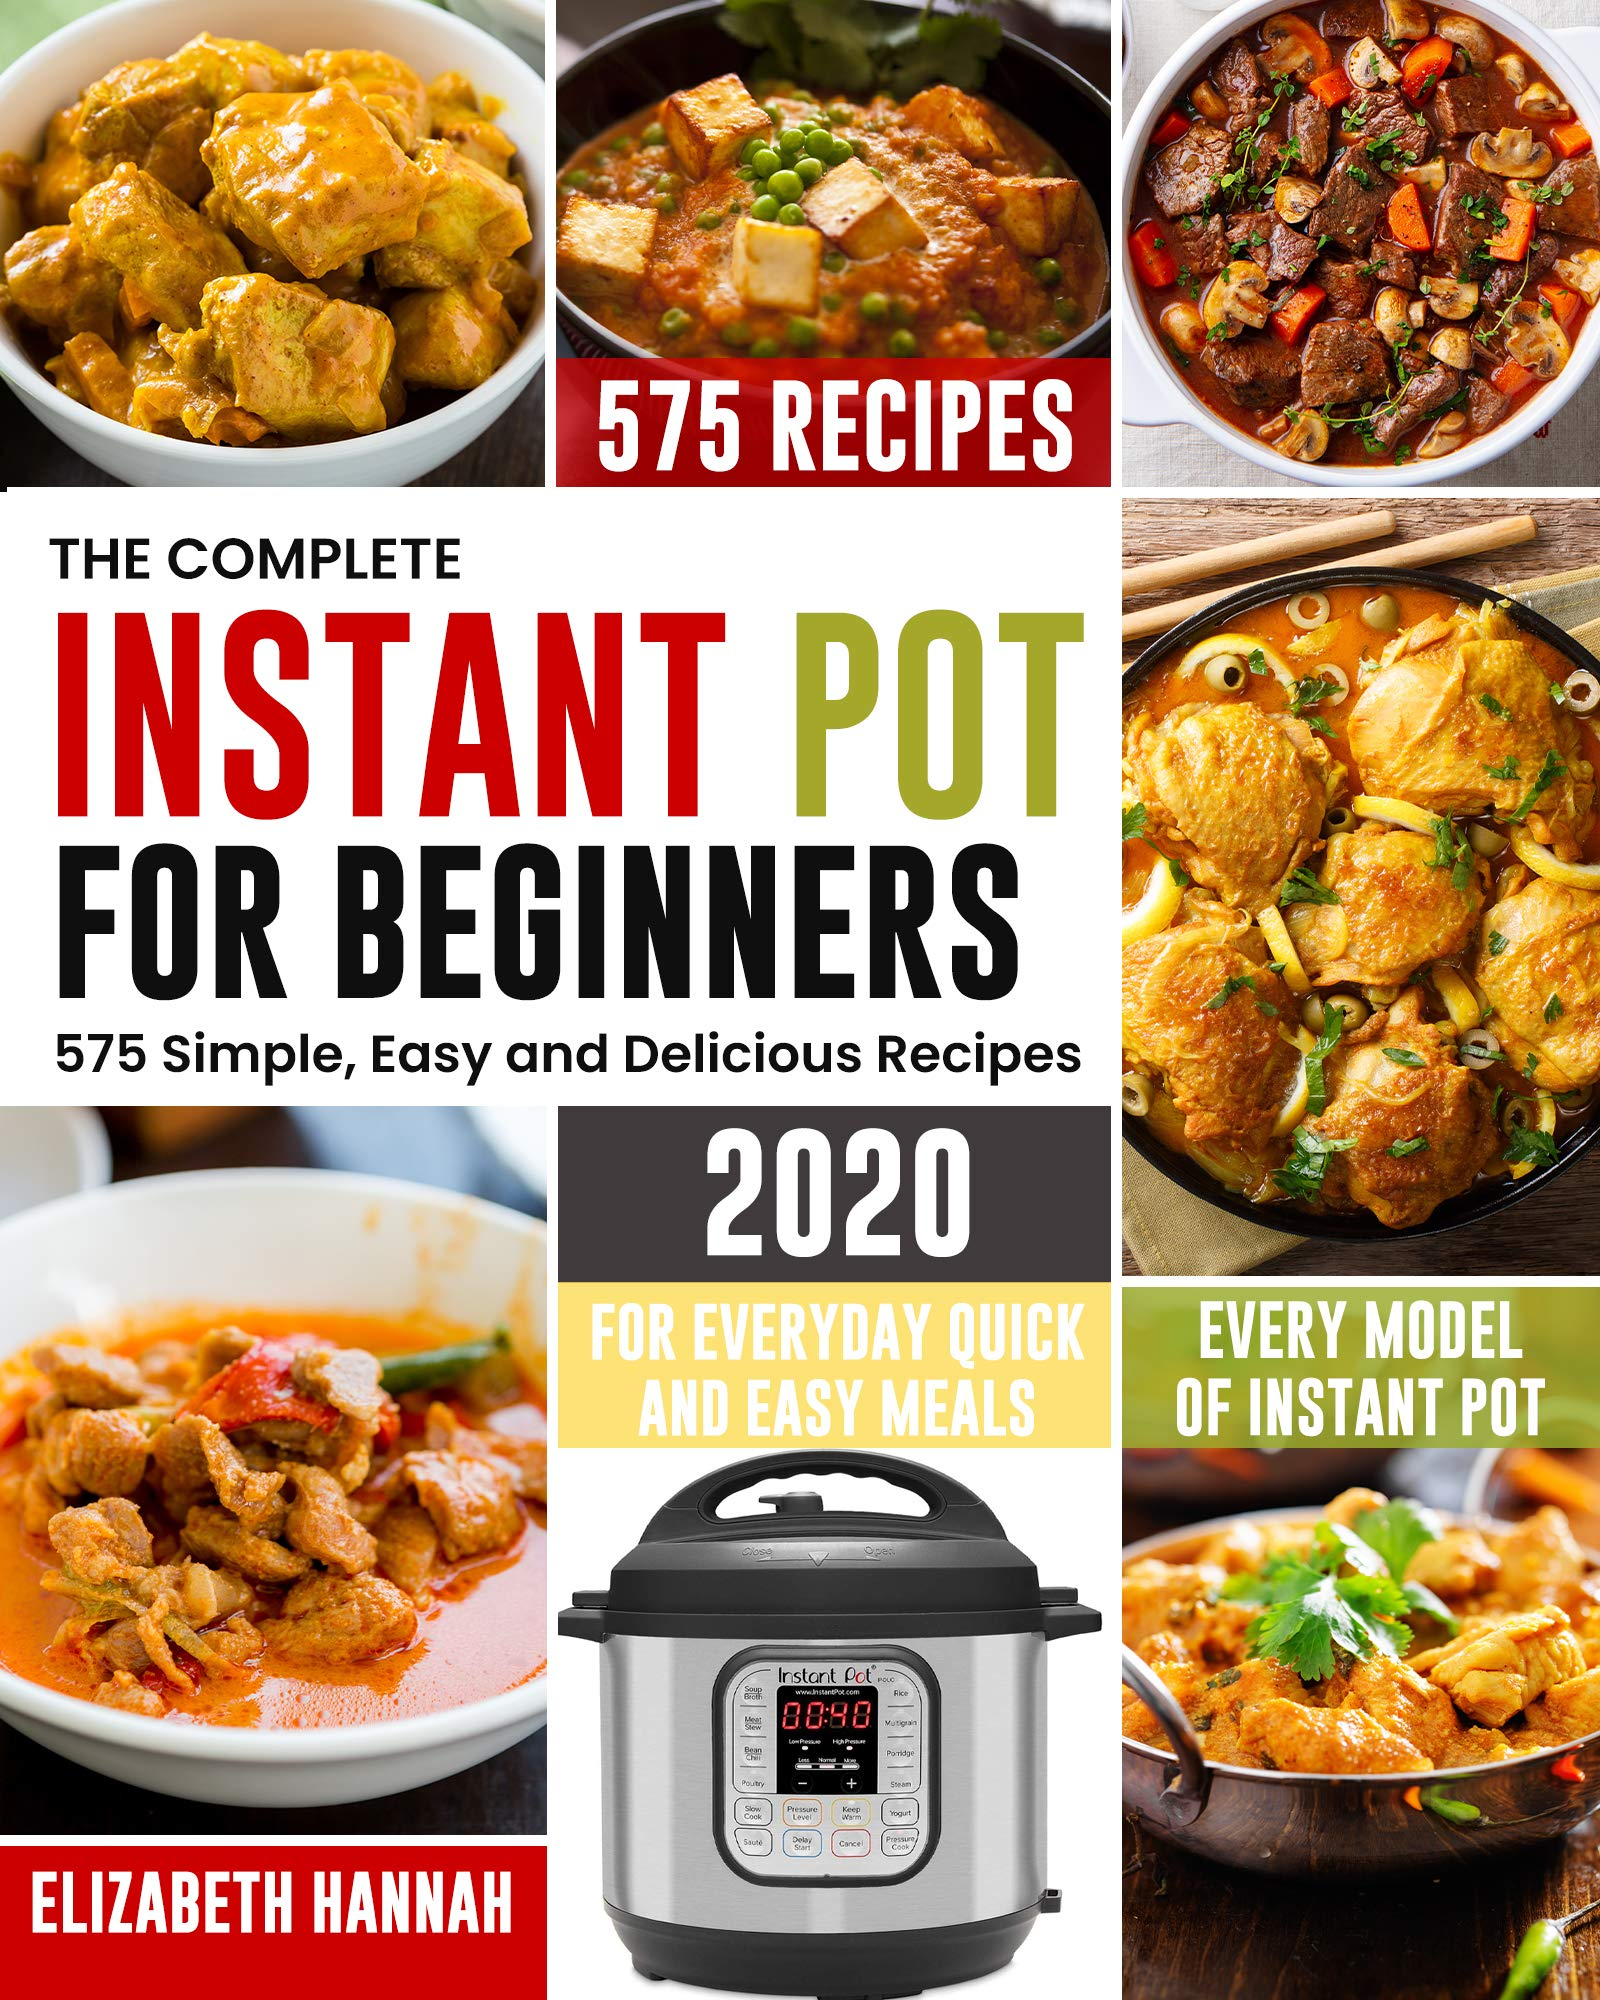 The Complete Instant Pot For Beginners 2020  575 Simple Easy And Delicious Recipes   For Everyday Quick And Easy Meals   Every Model Of Instant Pot  English Edition